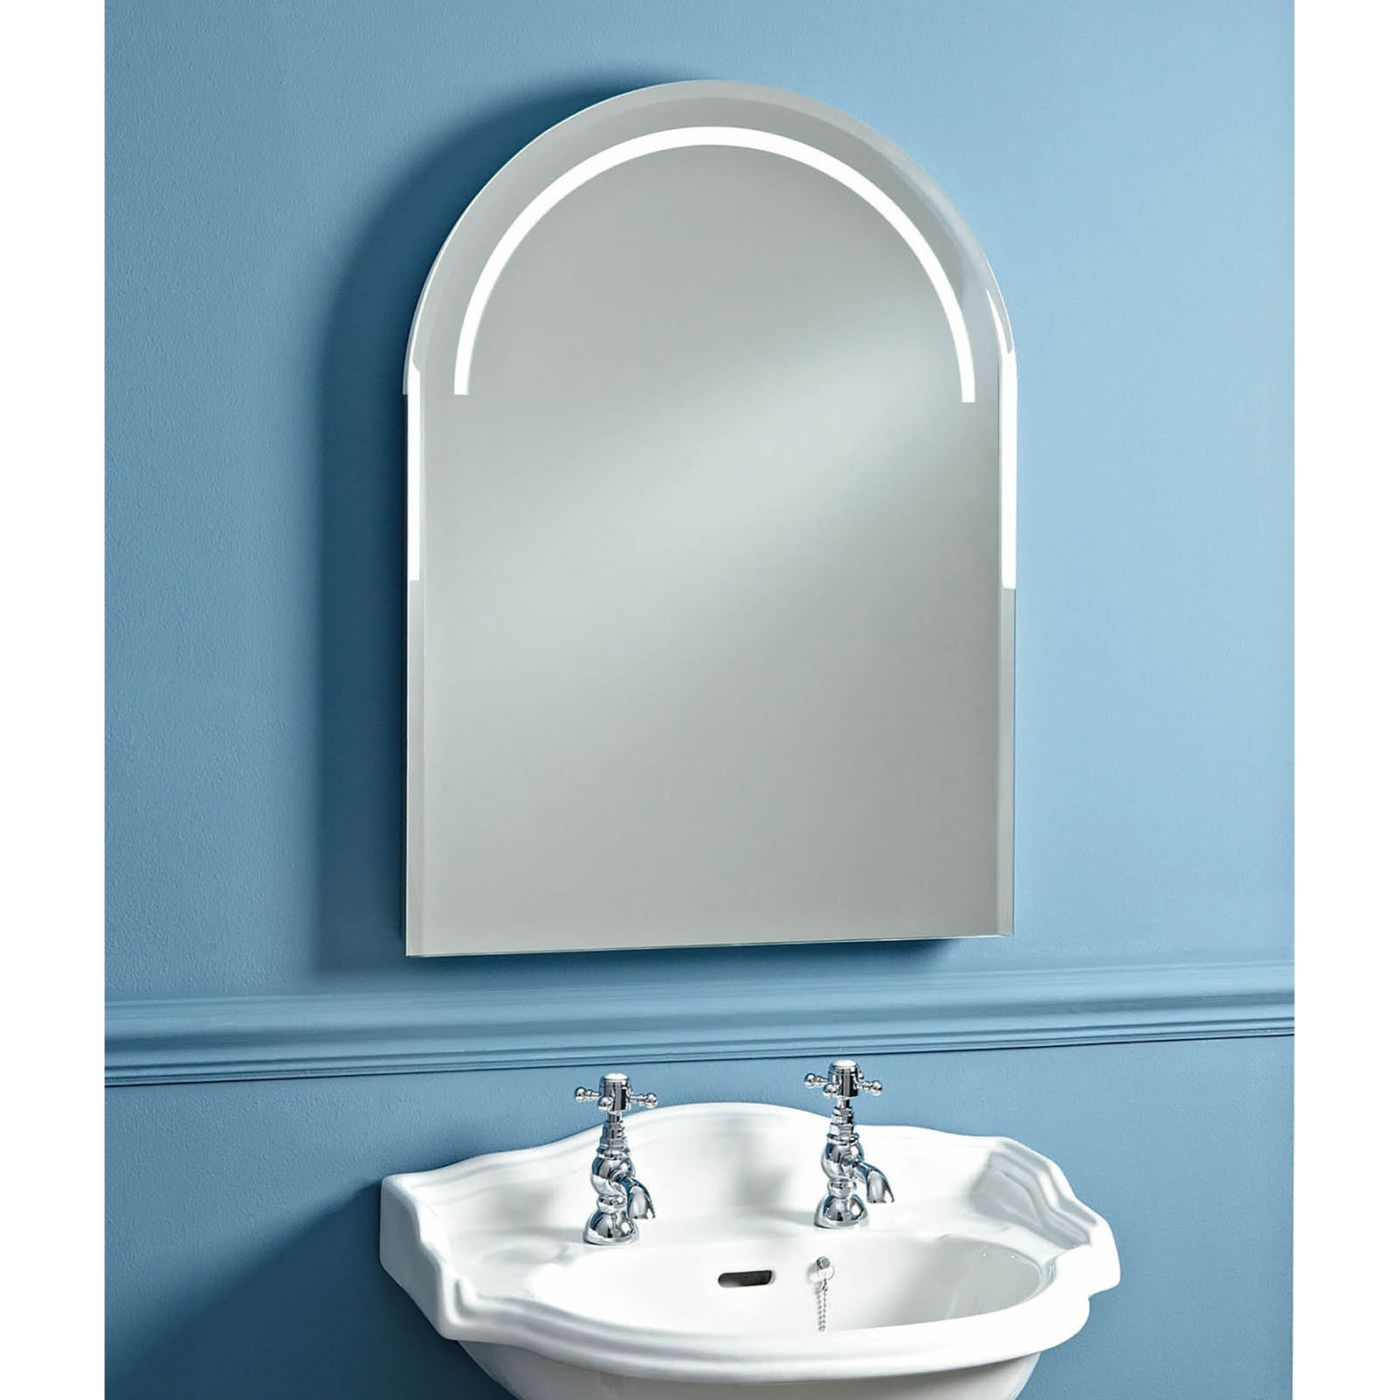 Phoenix Balmoral 550mm Led Back Lit Mirror With Heated